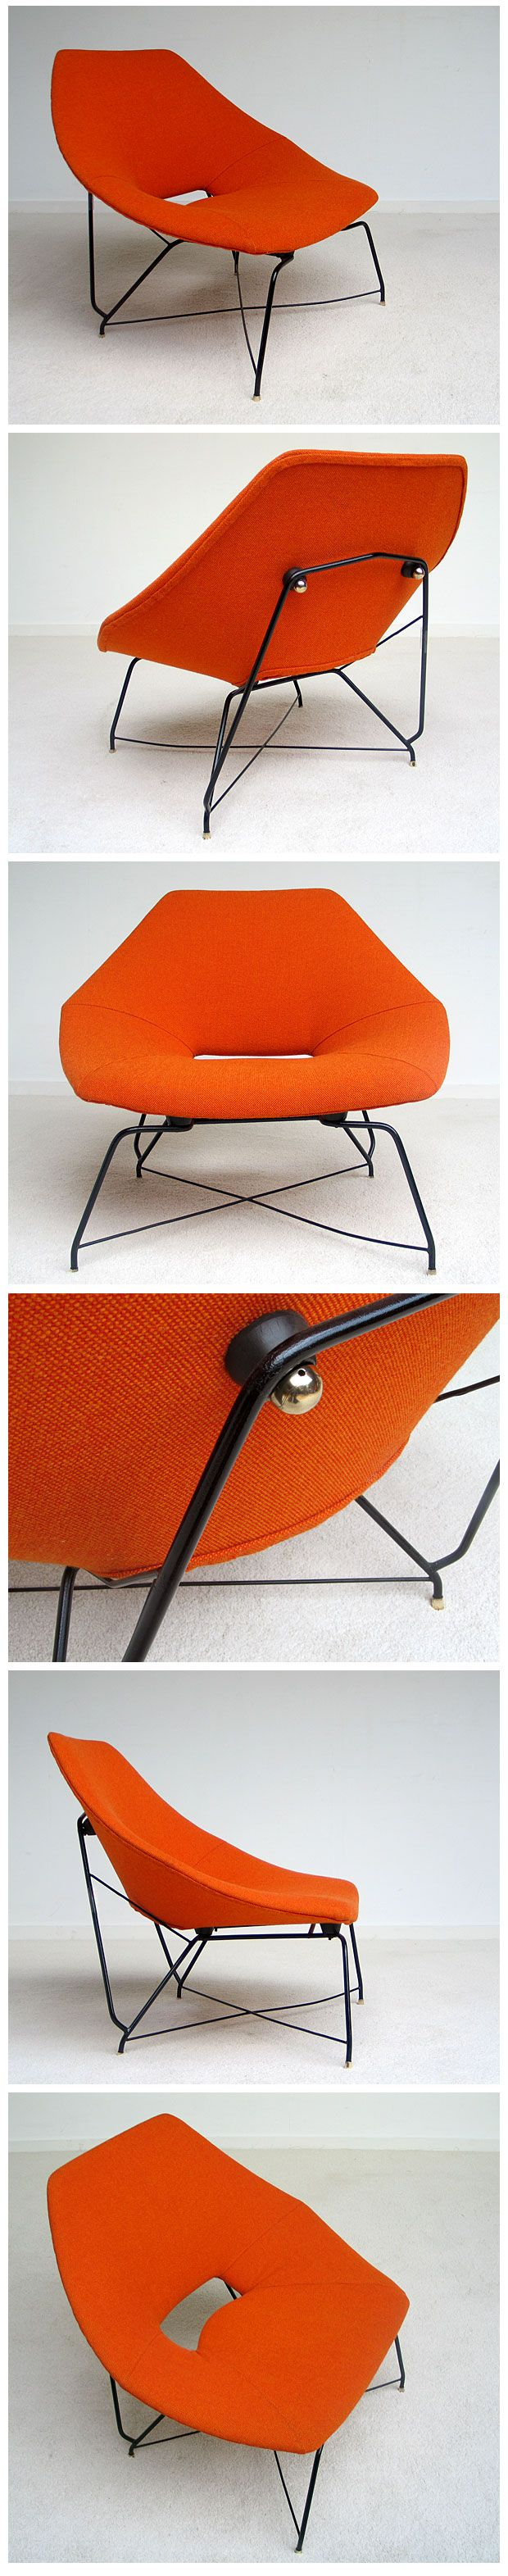 Side chair from Augusto Bozzi for Saporiti Italy, period 1956. Plywood structure, new orange wool upholstery. Finished with copper buttons on the back side. Black enameled metal structure with copper on the end.